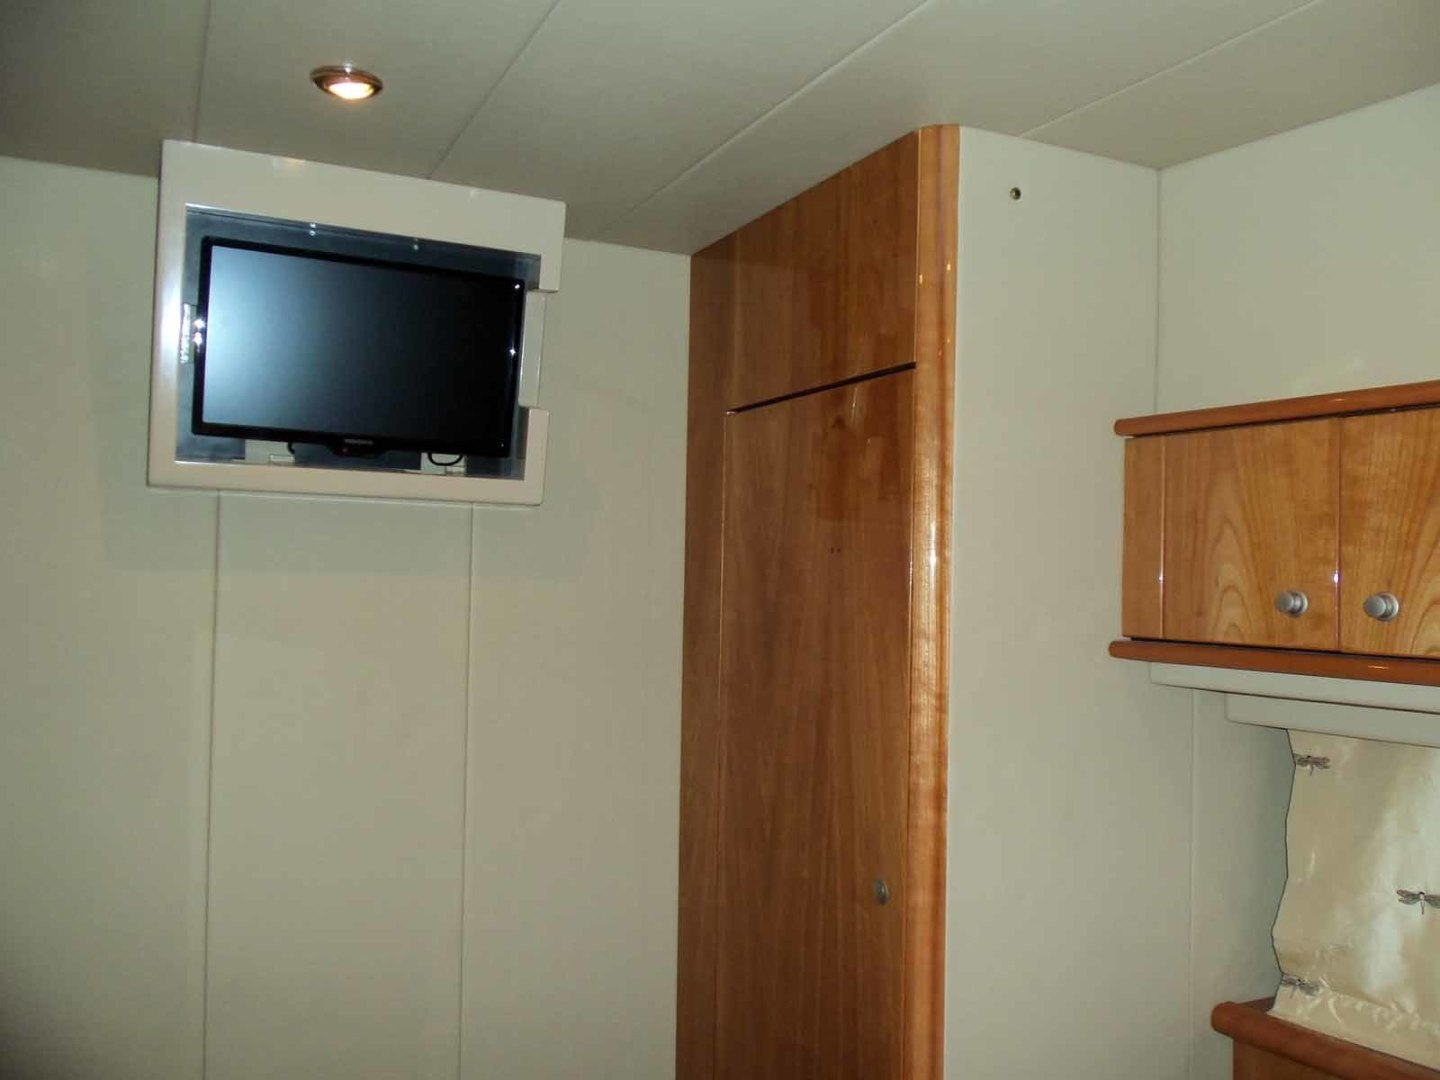 Neptunus-62 Flybridge 2008-FAMILY TRADITION Charleston-South Carolina-United States-Starboard Side Cabin Looking Forward-1336723 | Thumbnail